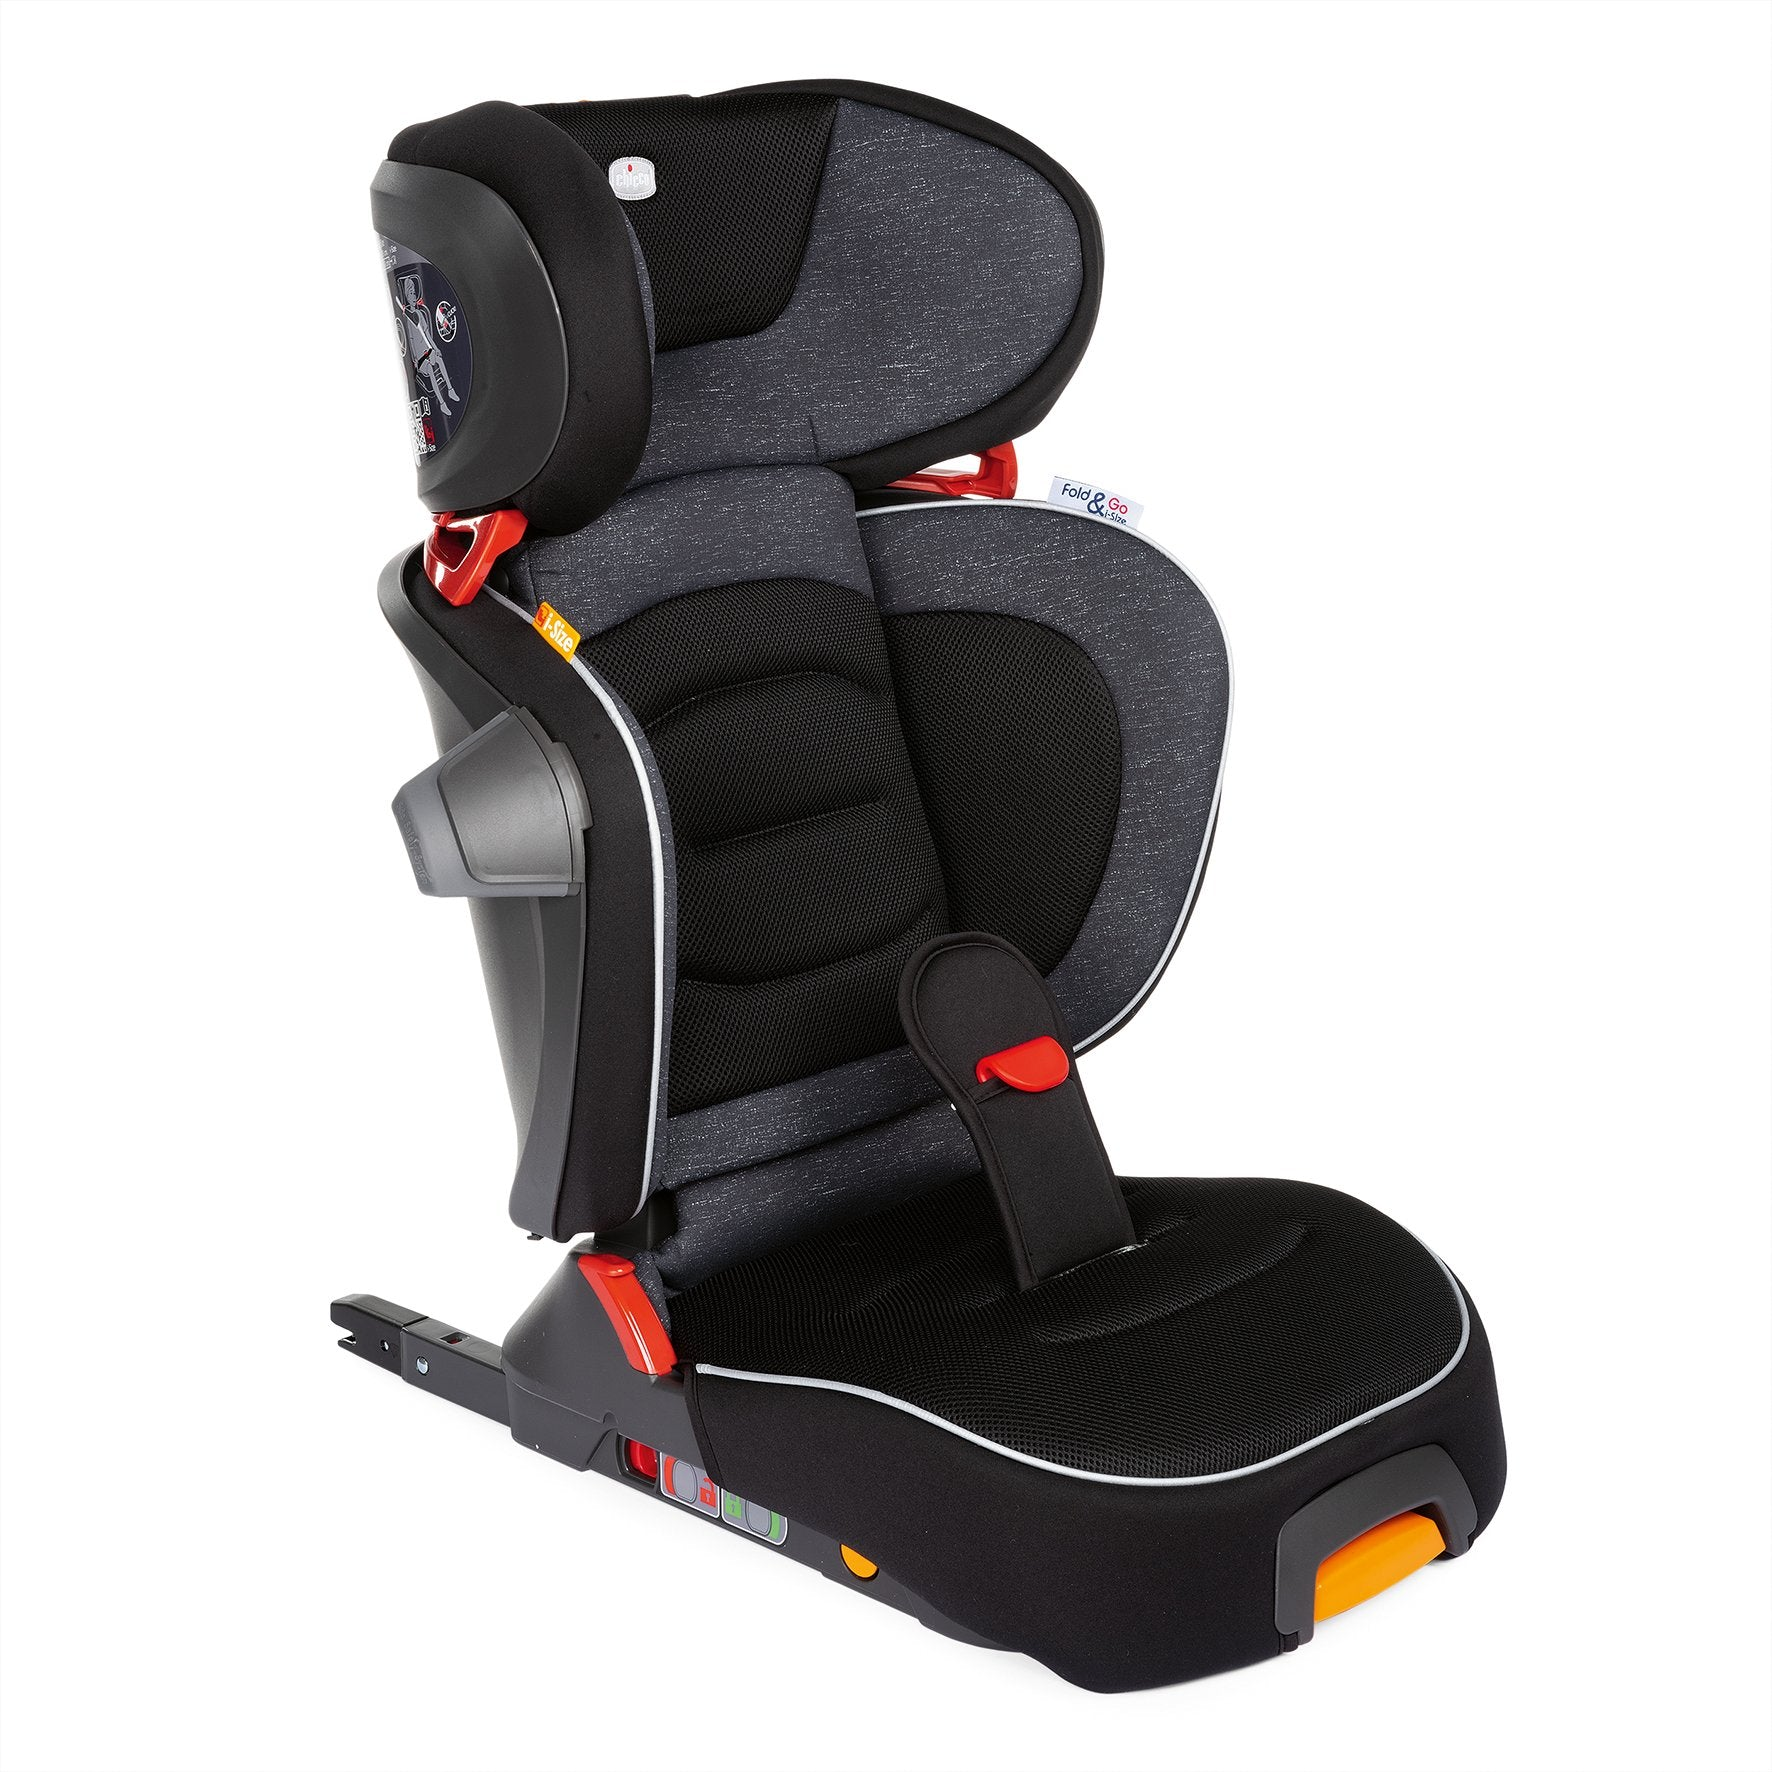 Chicco Fold and Go Booster seat in black in upright position